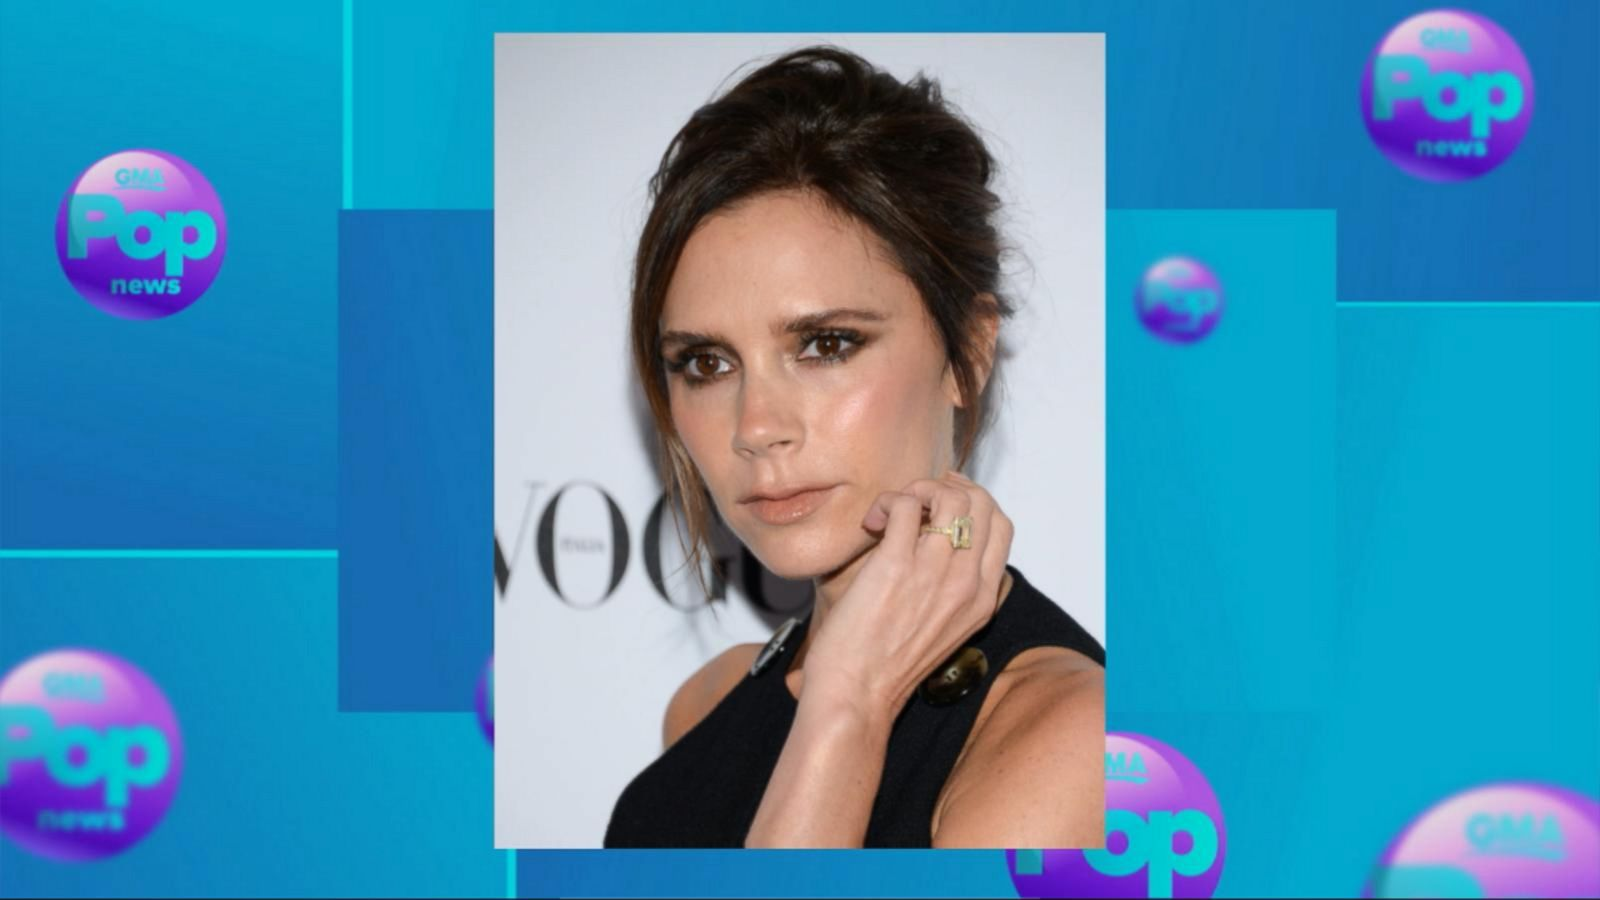 VIDEO: Victoria Beckham to Release Target Clothing Collection